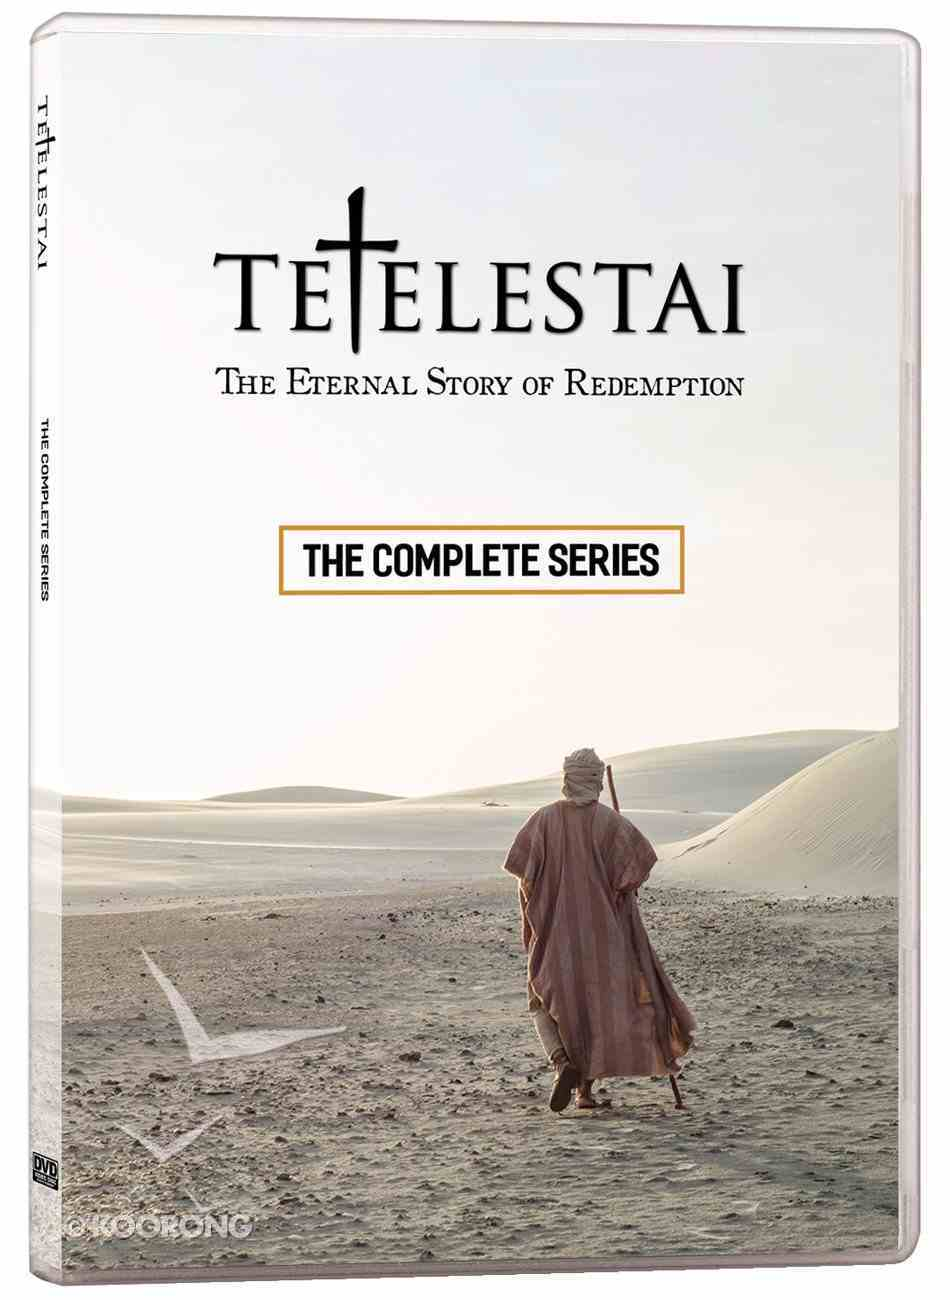 Tetelestai: The Eternal Story of Redemption Complete Series (6 Dvds) DVD